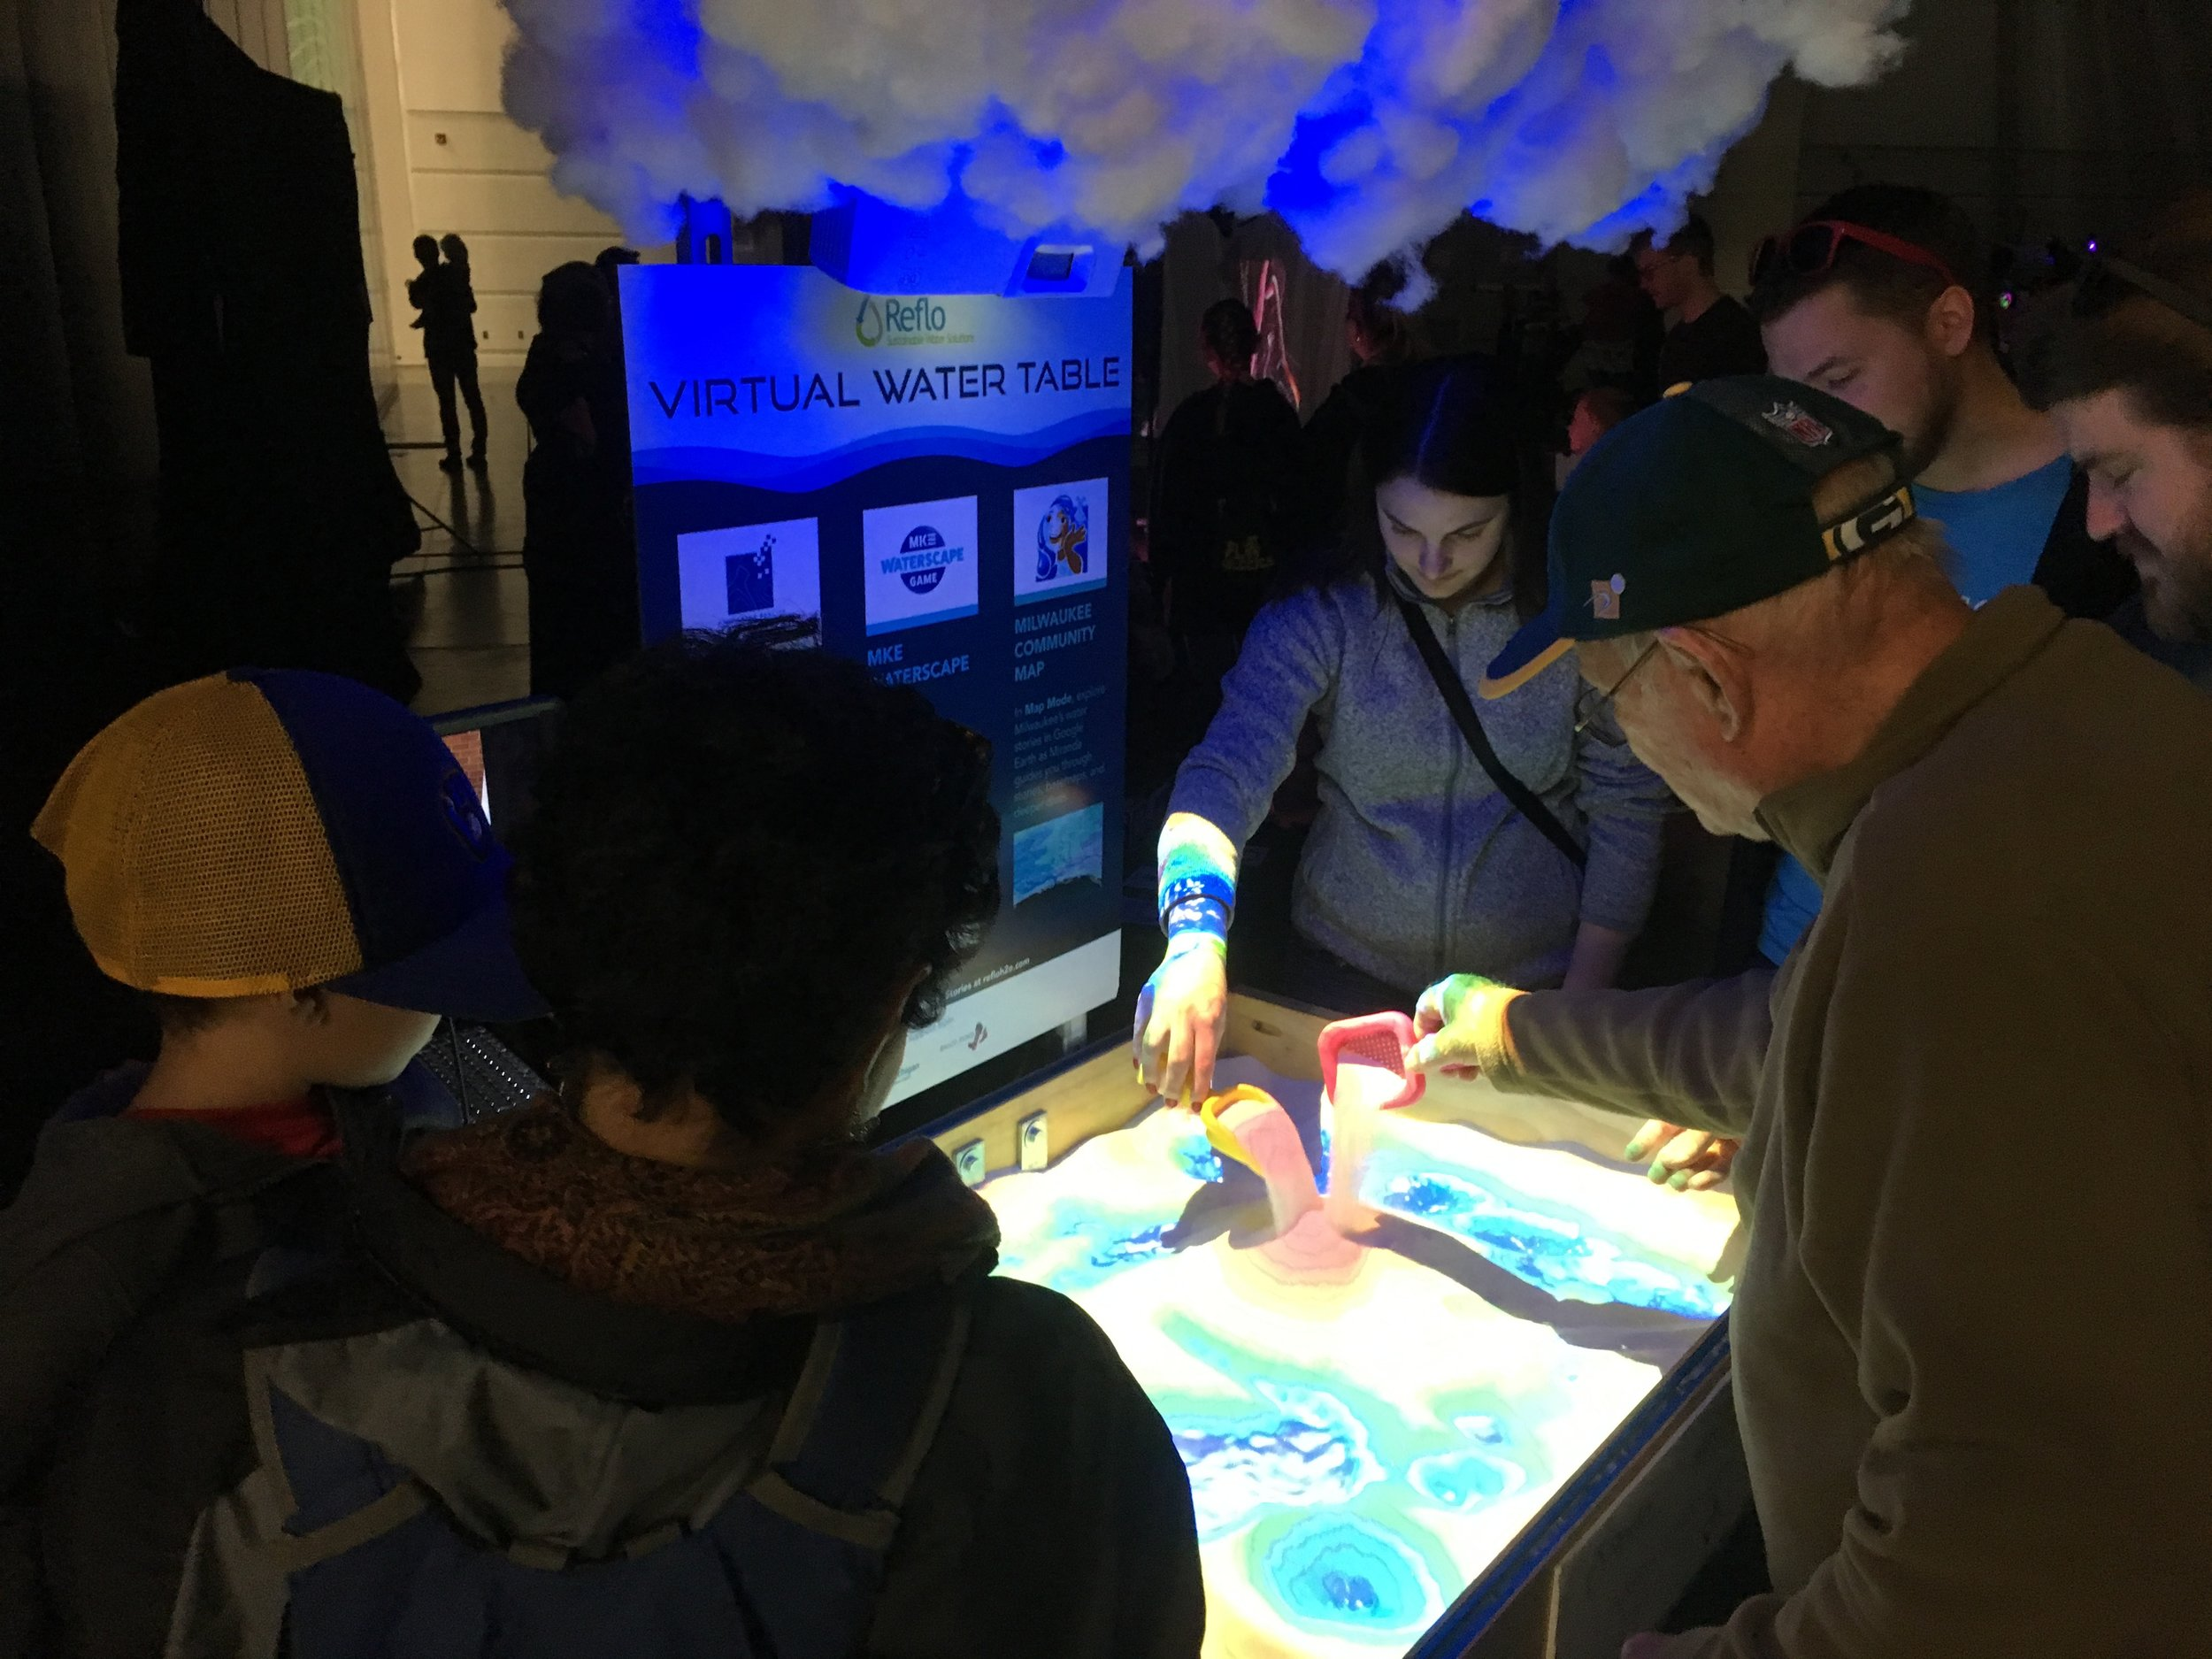 The Virtual Water Table promotes intergenerational interaction, reminding us of our human instinct to touch and connect.